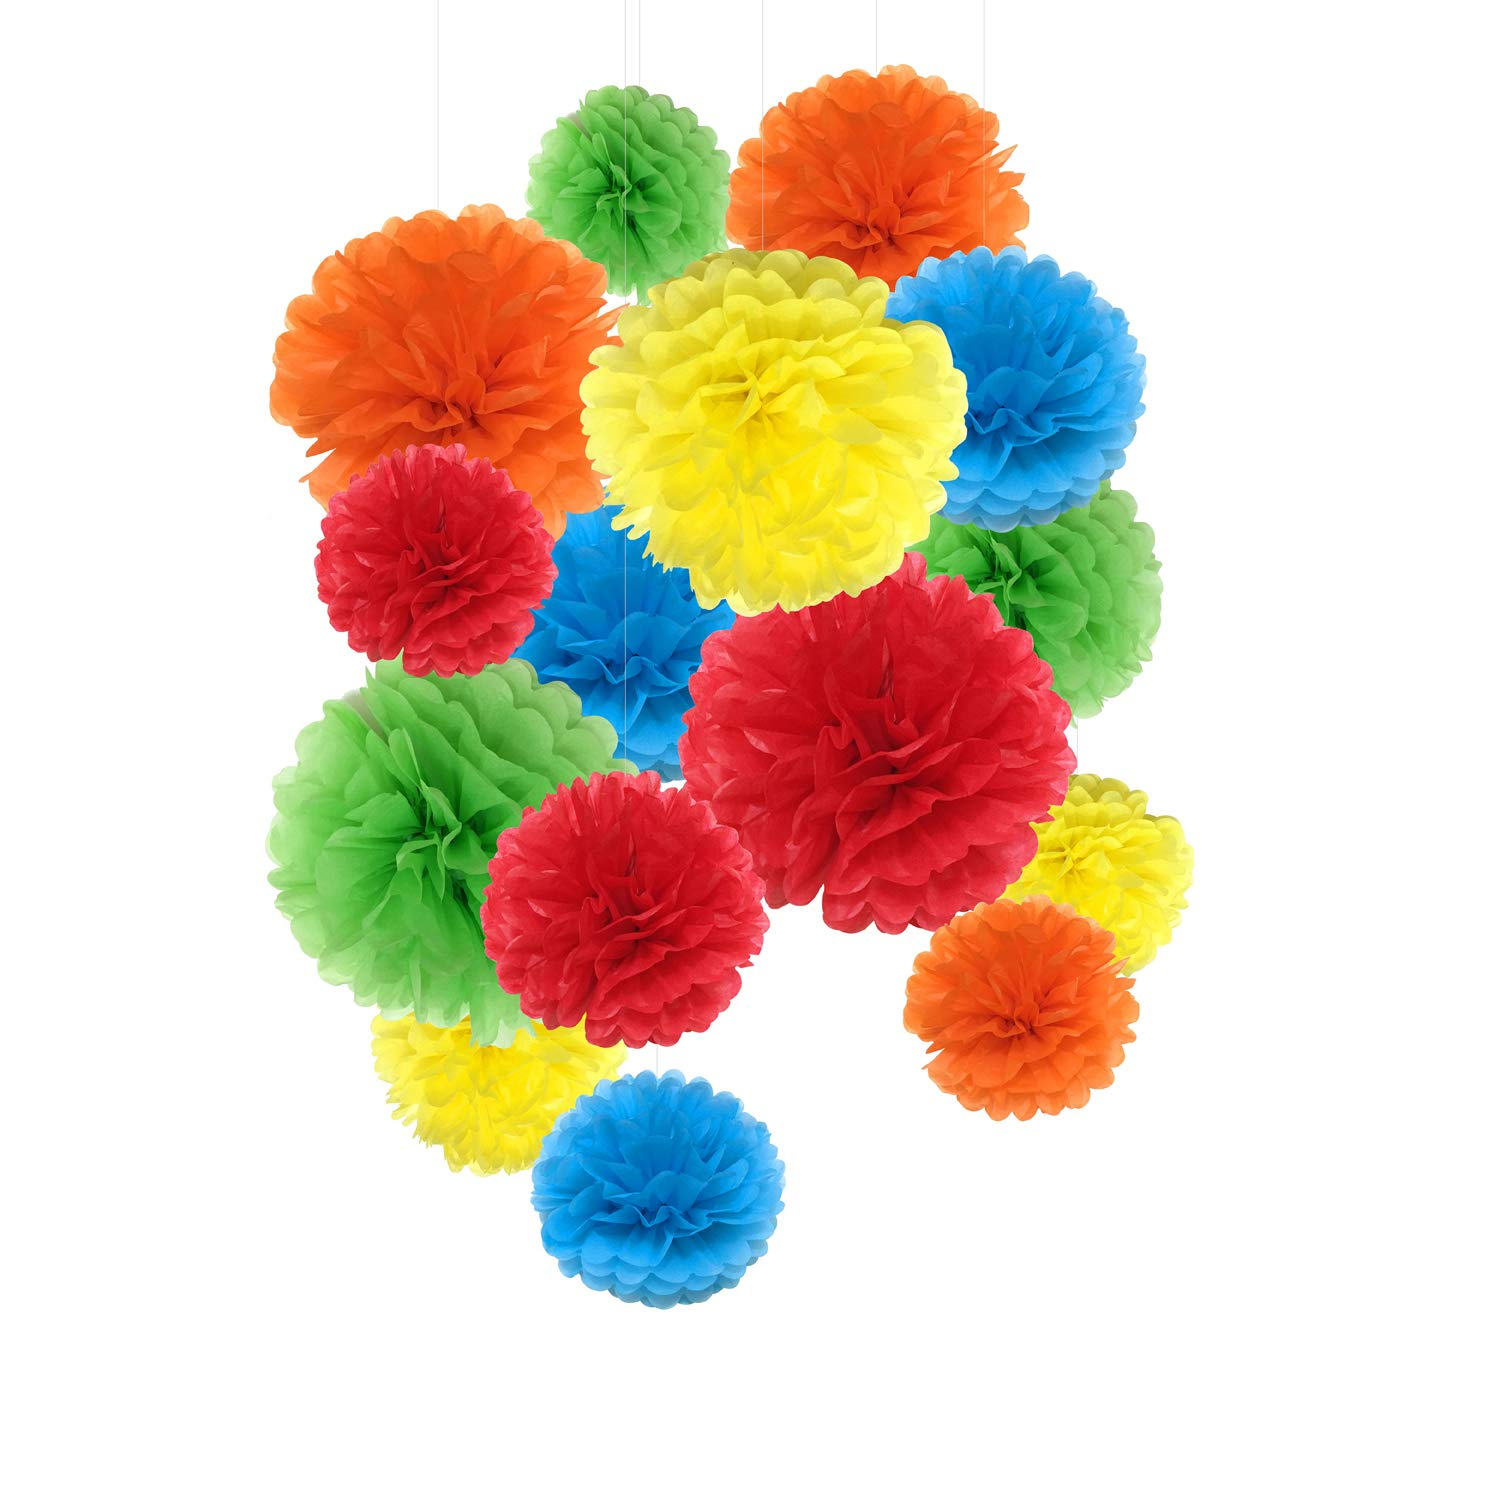 Tissue Paper Pom Poms Rainbow Paper Flowers For Party Decorations - 15 Pcs of 8,10,14 Inch ST 4336867202